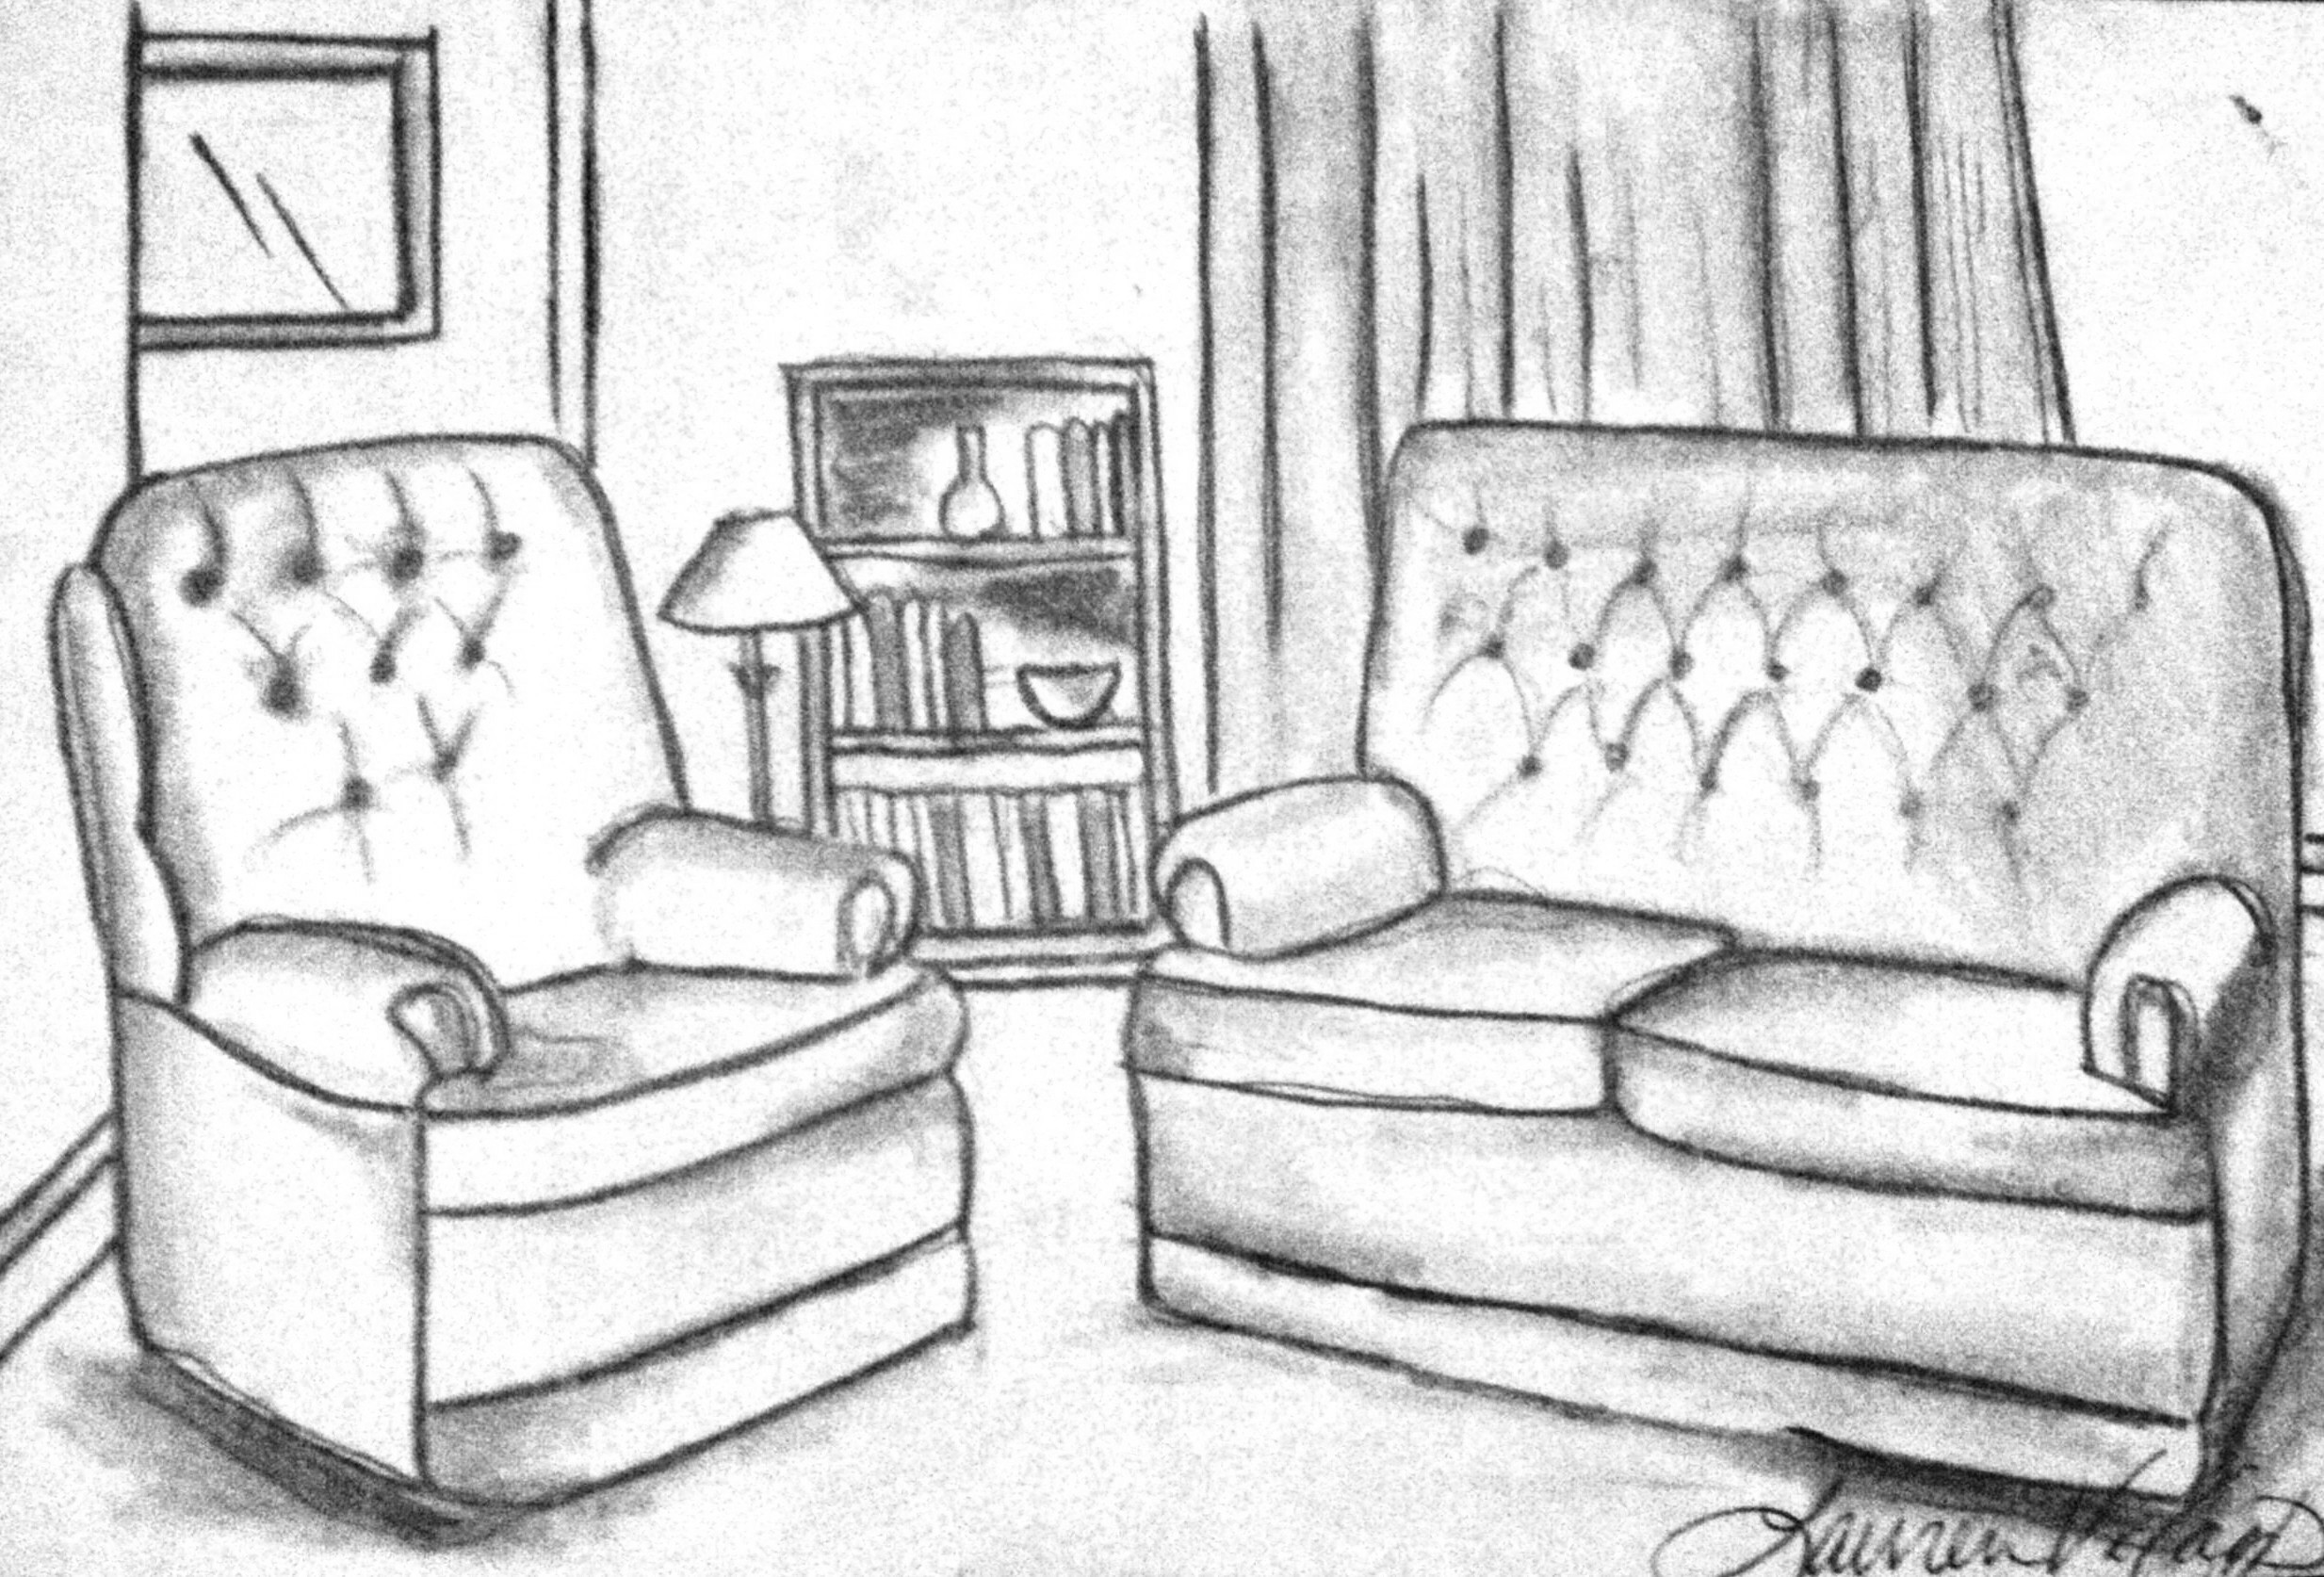 Living Room Living Room Drawing 1000 images about perspective rooms on pinterest one point living room drawings remarkable cartoon drawing room